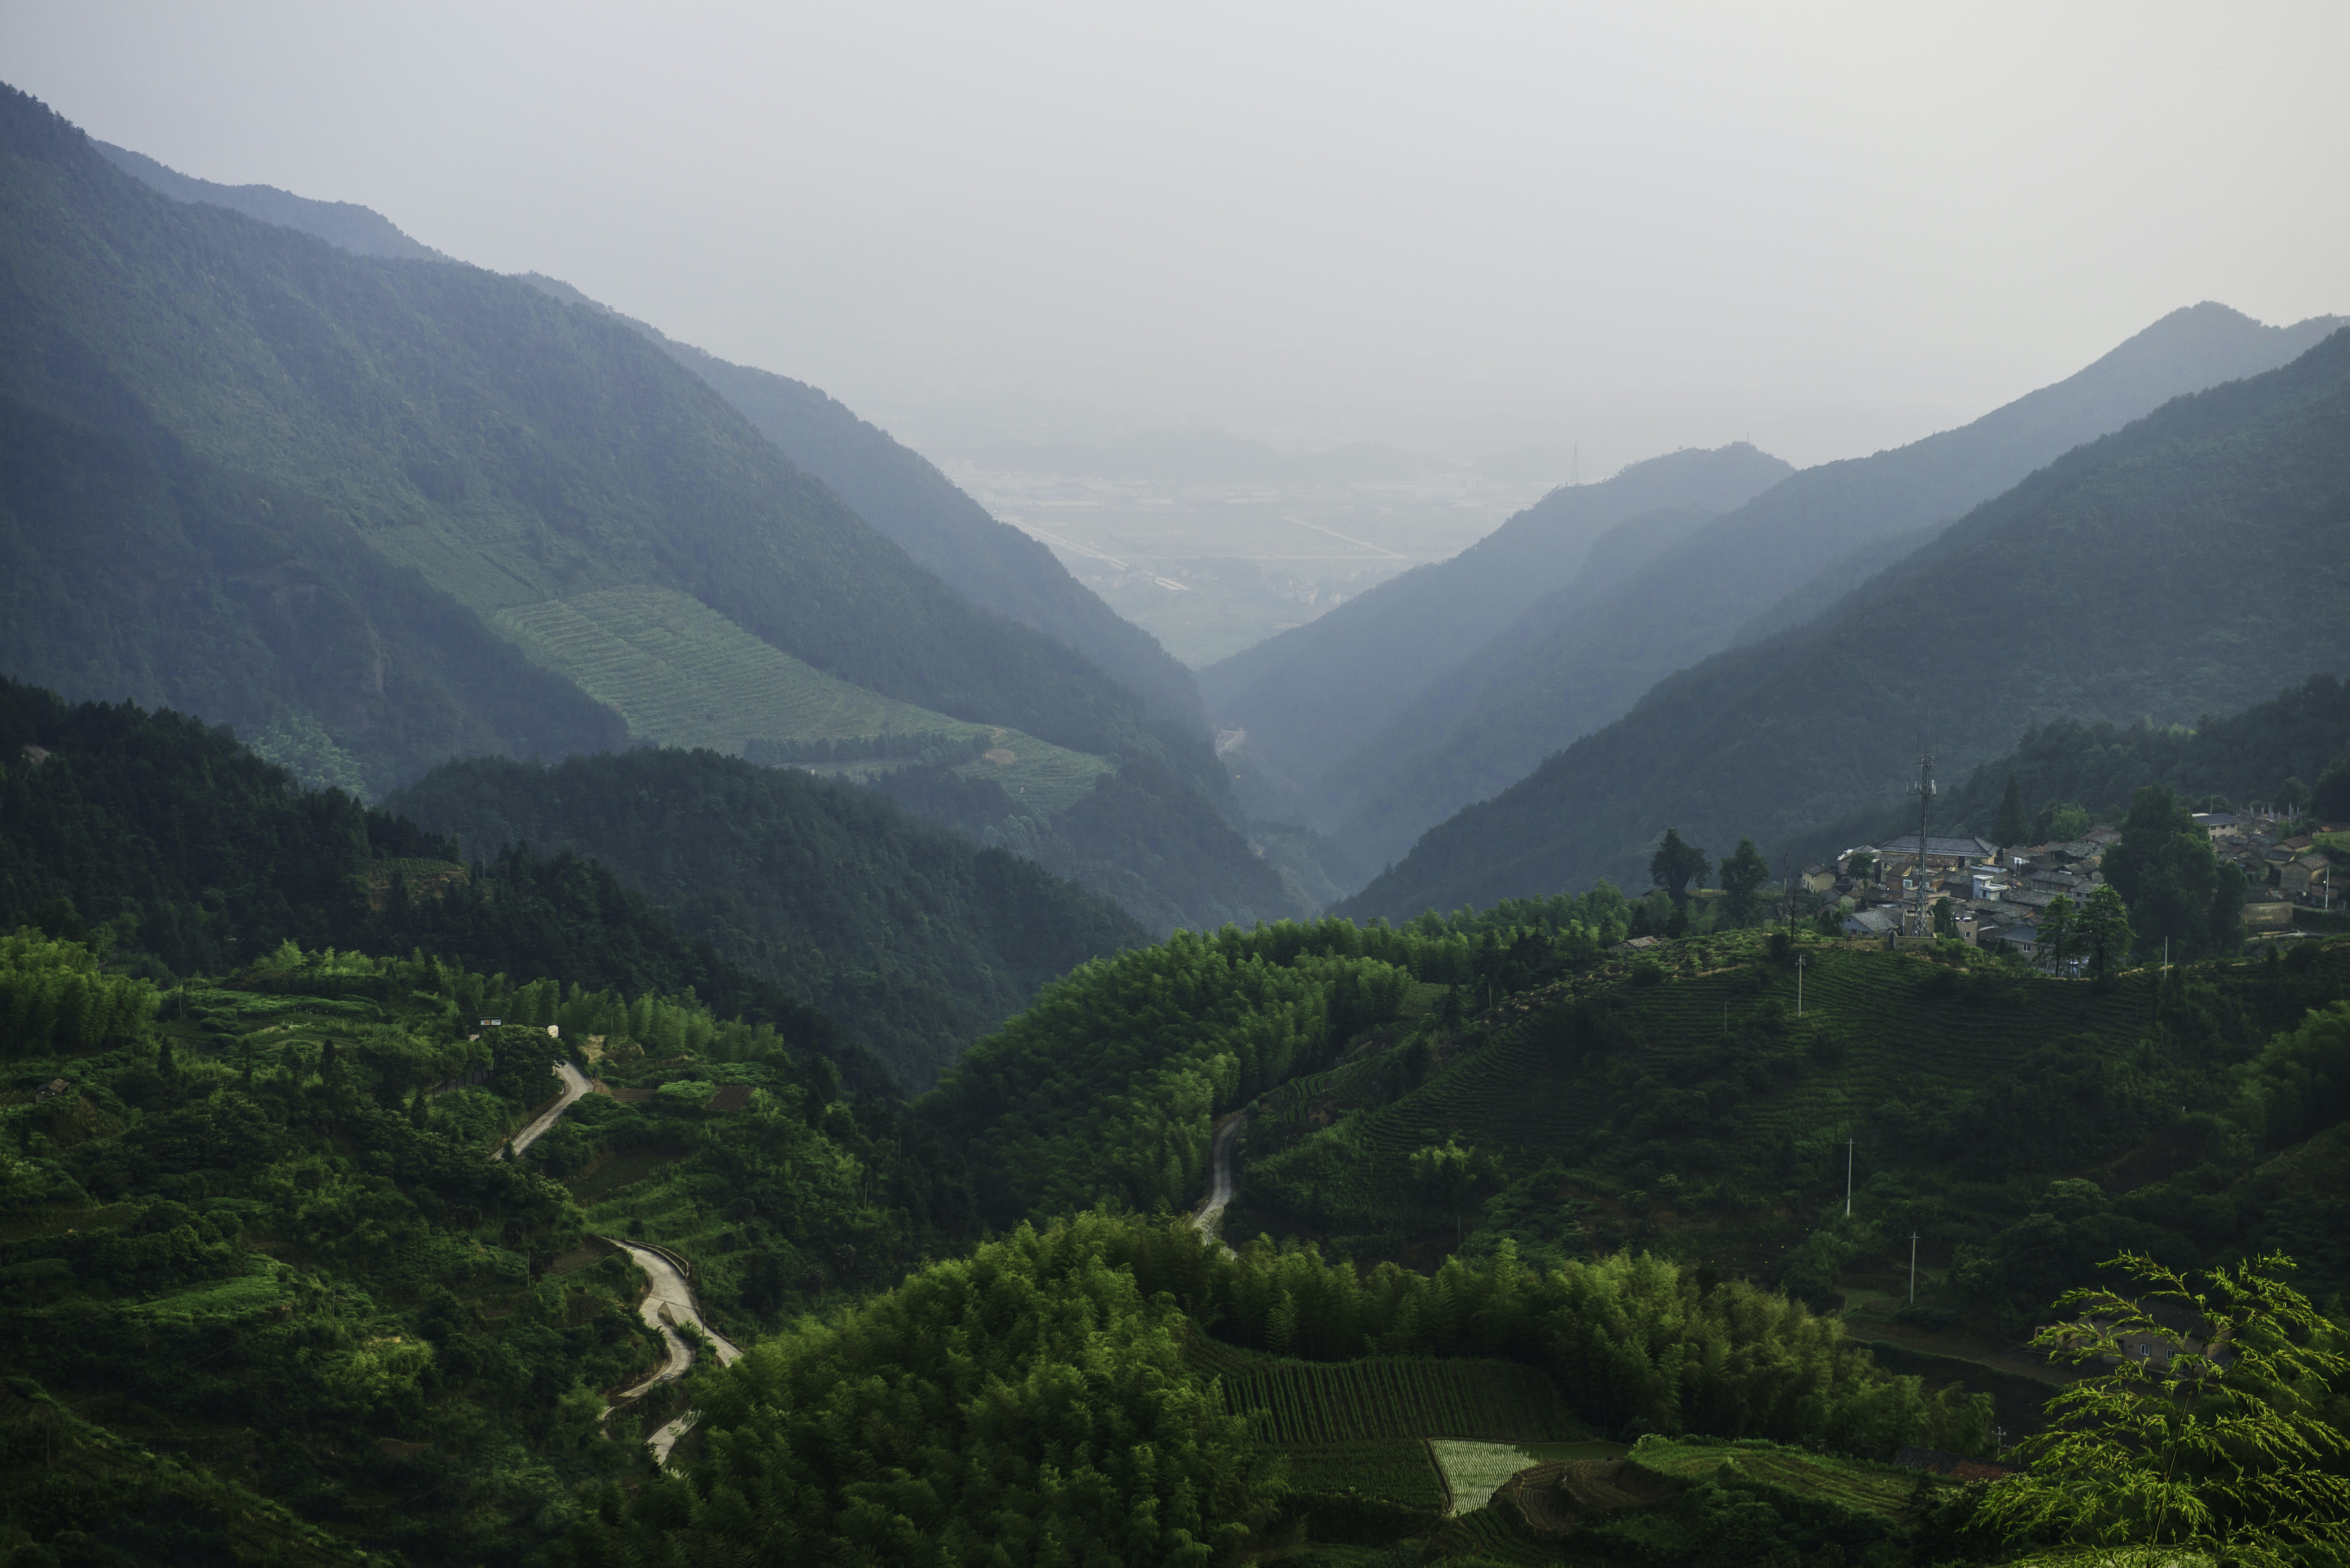 A village on a green hill overlooking a valley